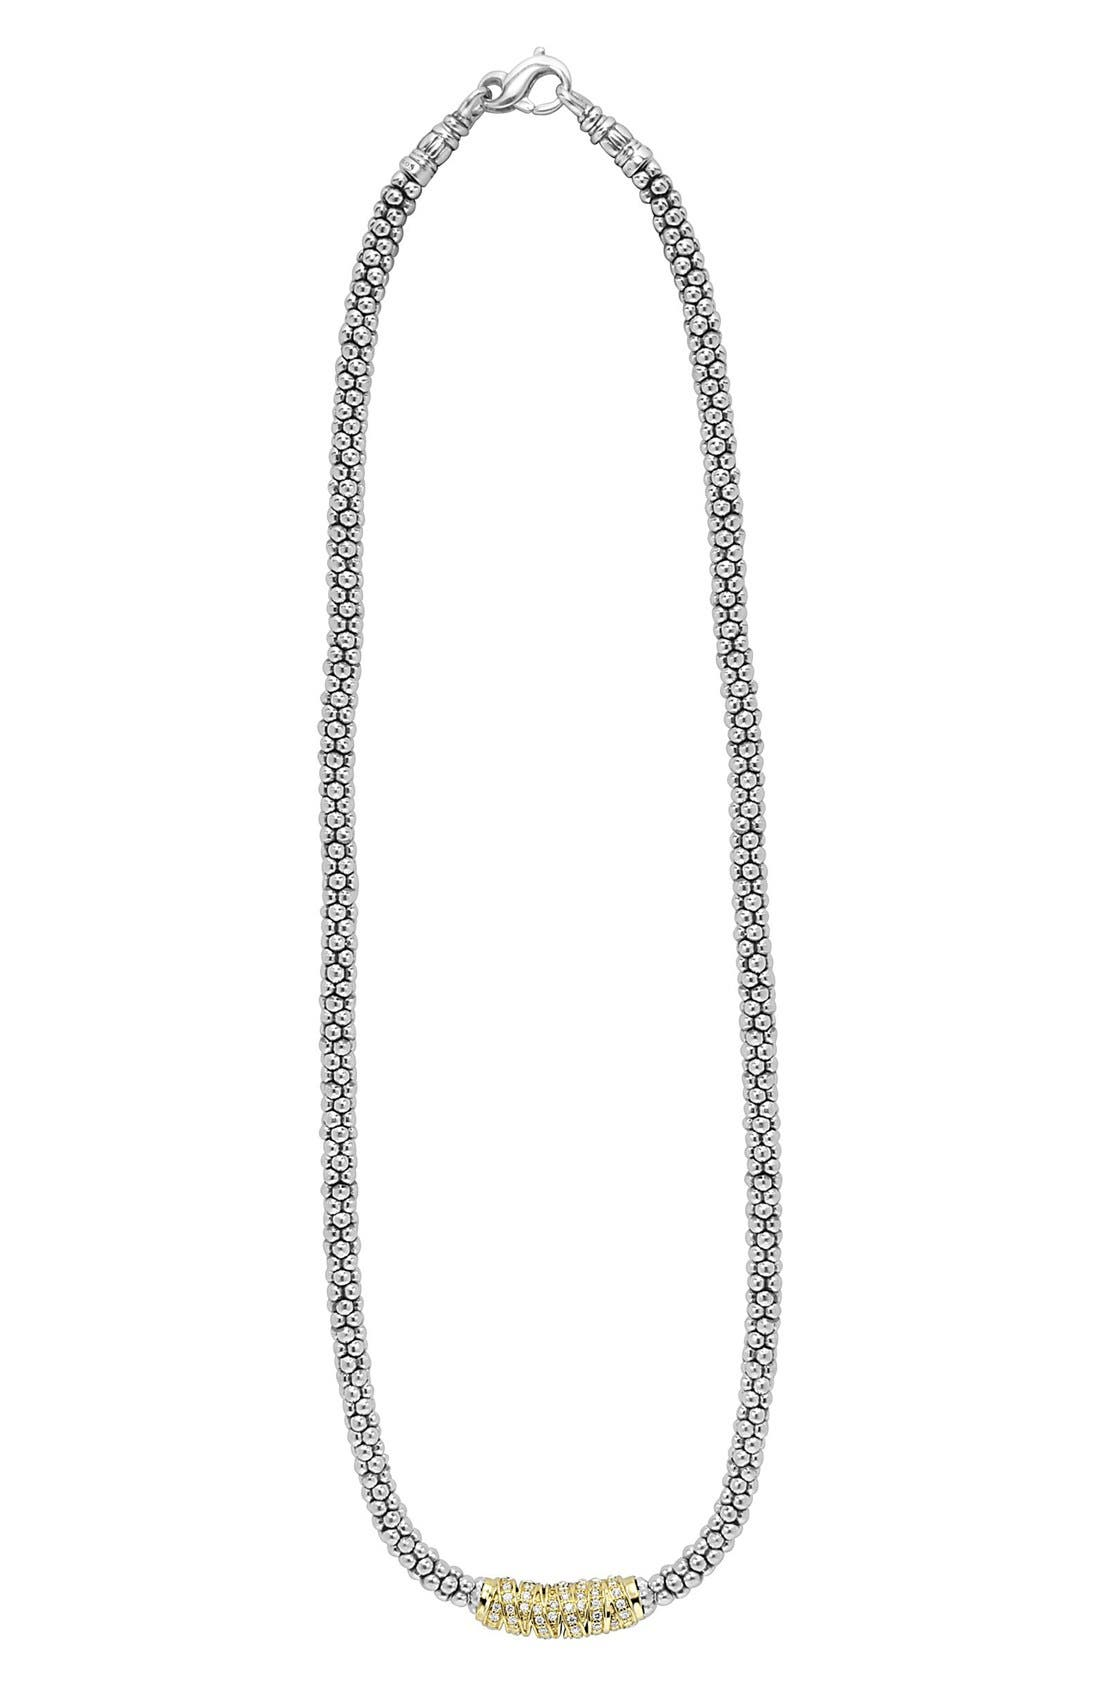 Main Image - LAGOS Embrace Rope Necklace (Online Exclusive)